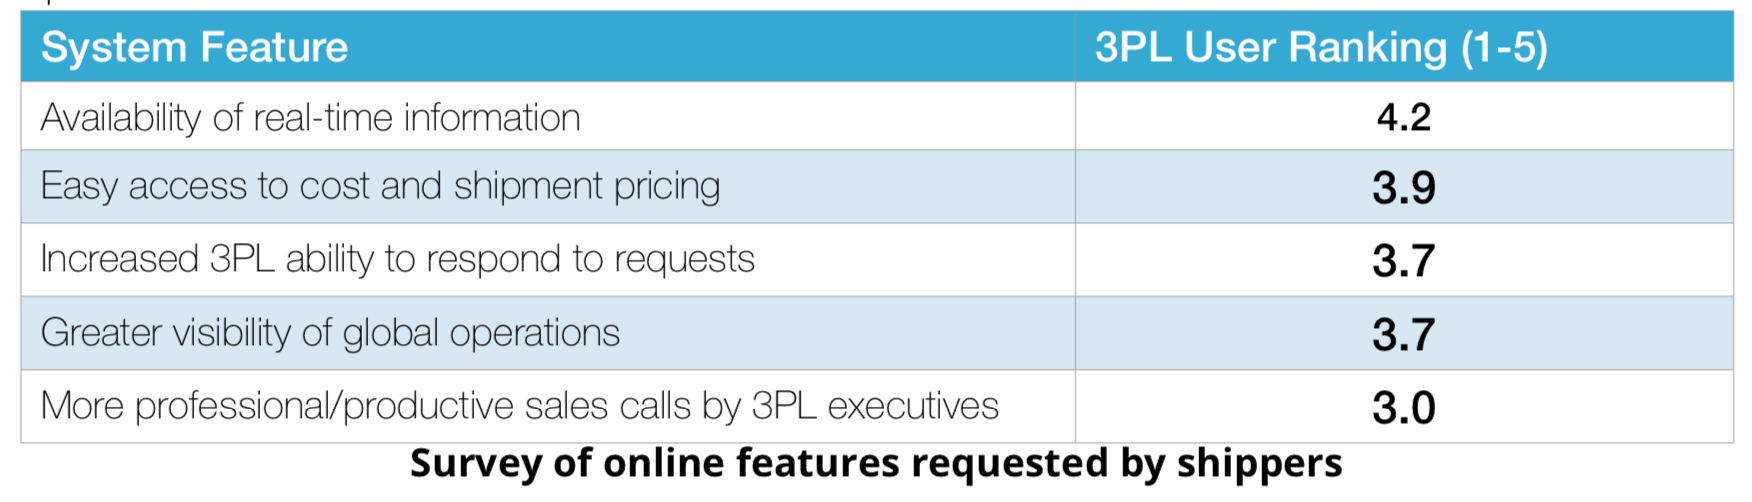 Top features that shippers want online